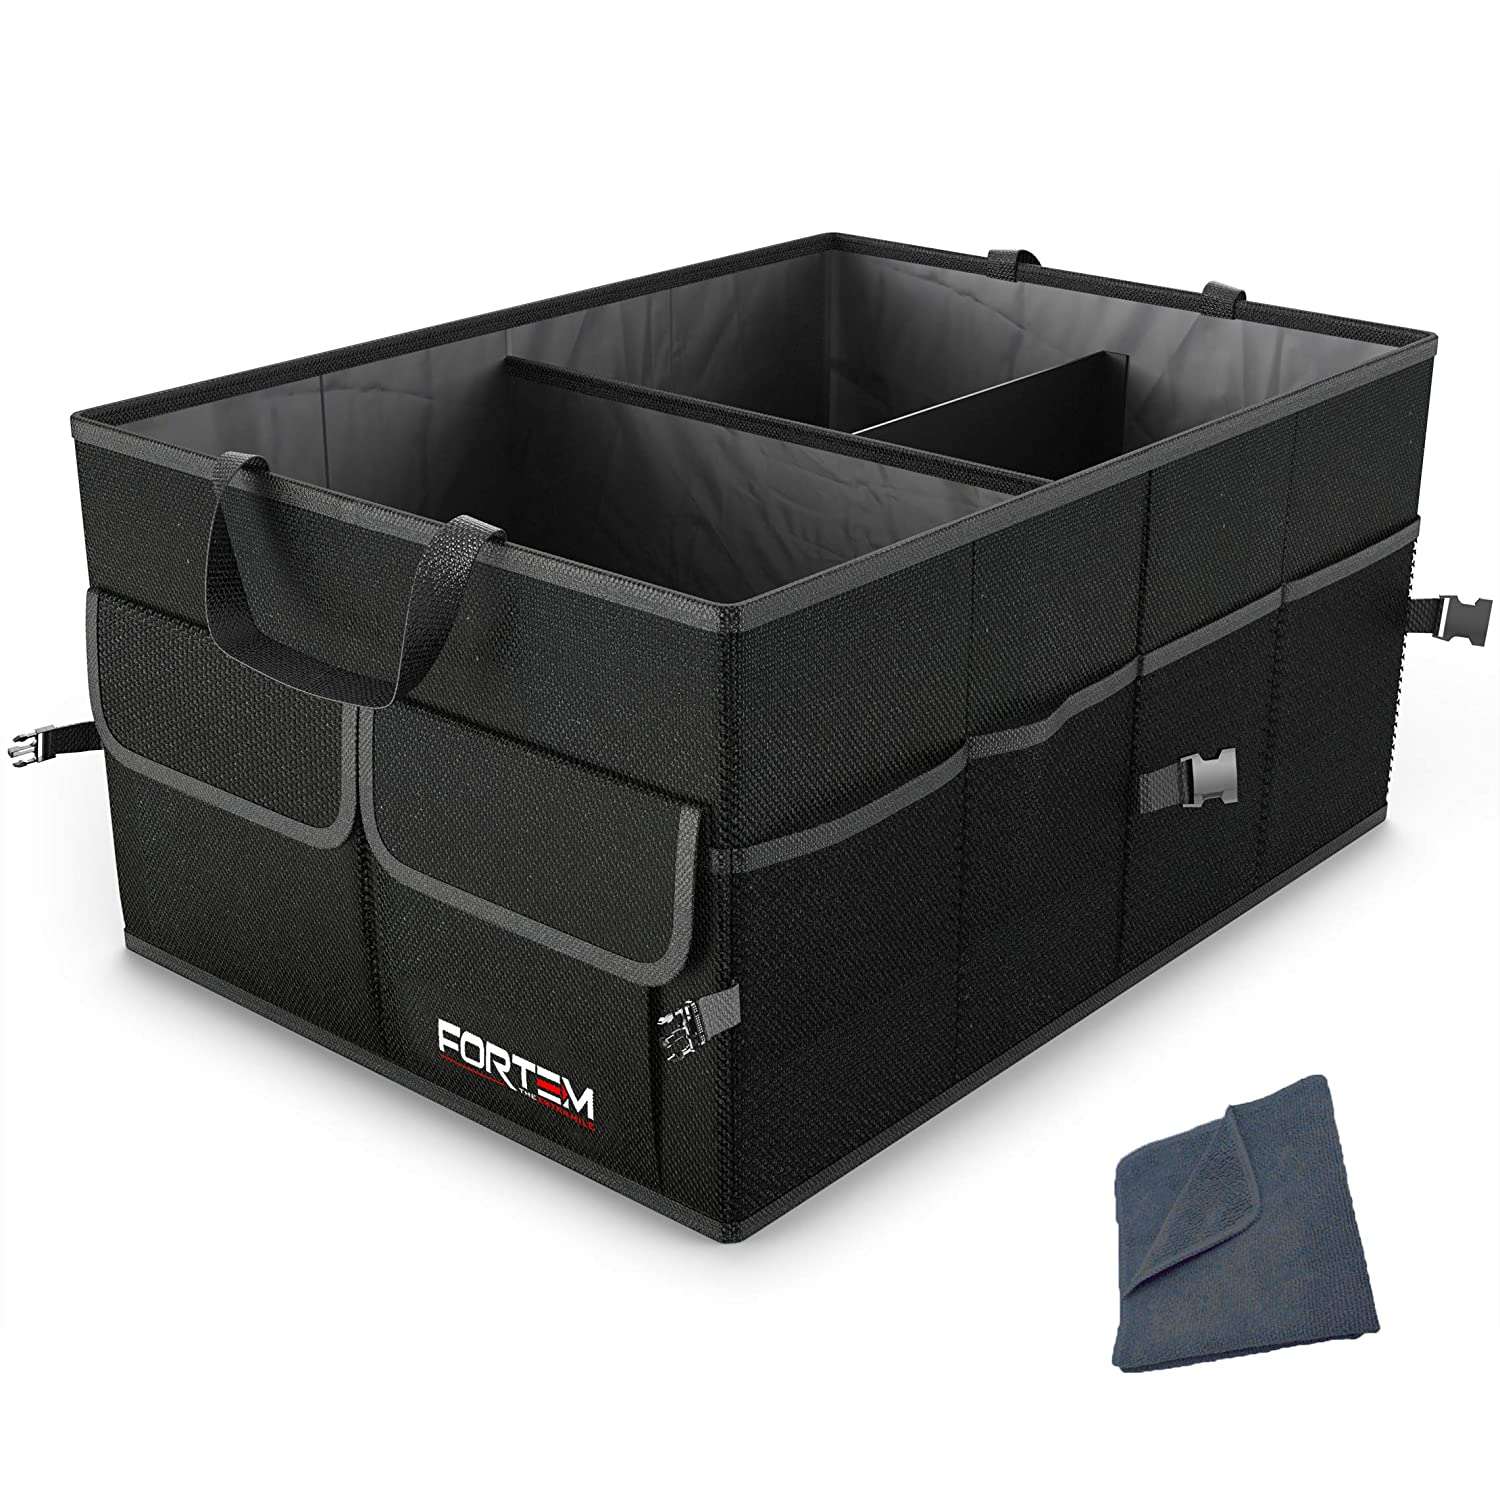 FORTEM Car Trunk Organizer for SUV Truck by FORTEM | Auto Durable Collapsible Cargo Storage | Non Slip Bottom Strips to Prevent Sliding | Securing Straps Included